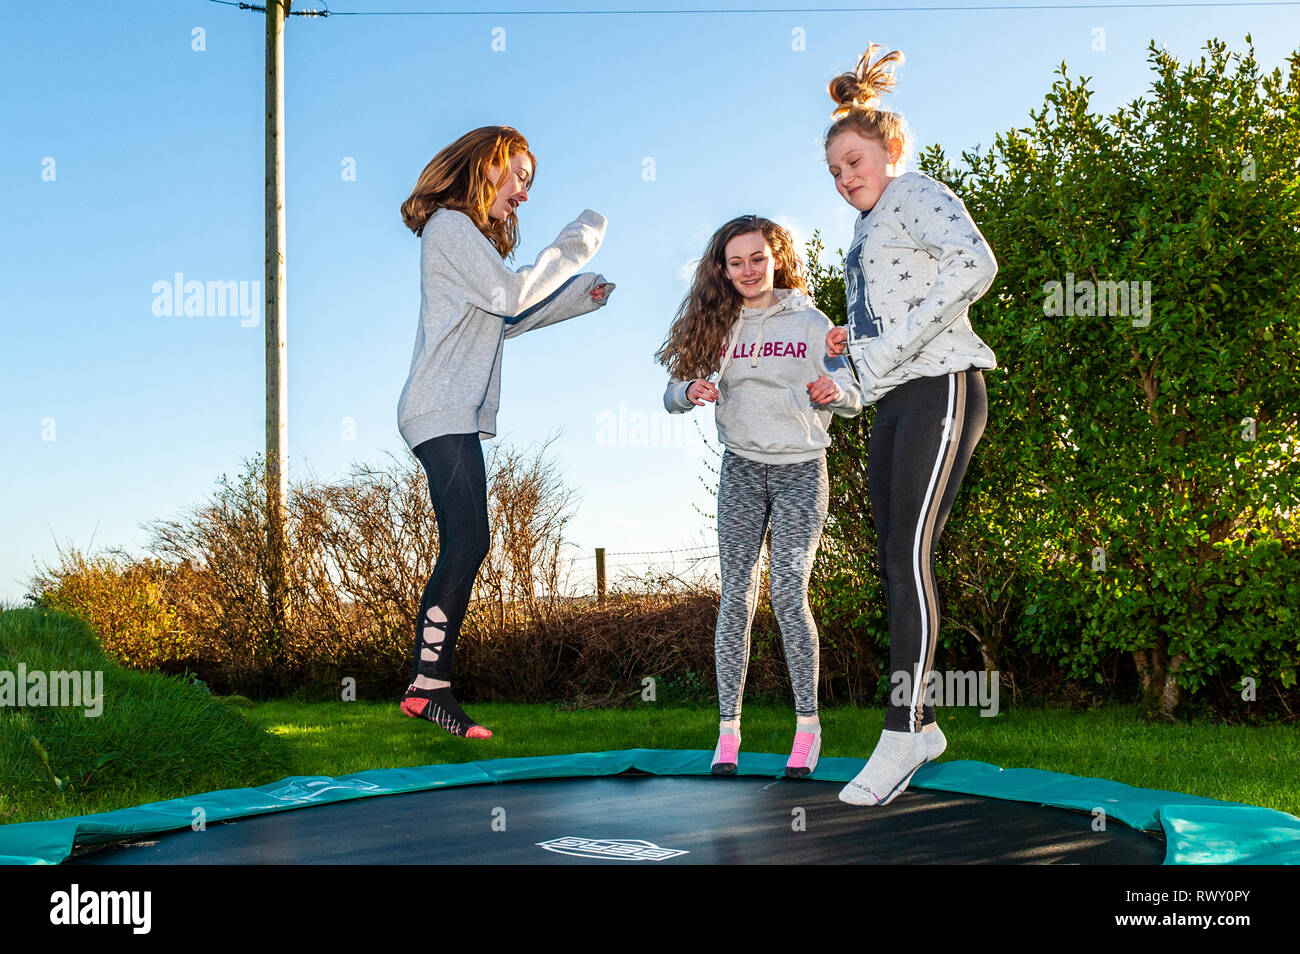 Ballydehob, West Cork, Ireland. 7th March, 2019. Girls make the most of the hot, sunny weather by bouncing on a trampoline. The day will continue to be sunny whilst tomorrow will start off dry with showers developing in the afternoon. Credit: Andy Gibson/Alamy Live News. - Stock Image